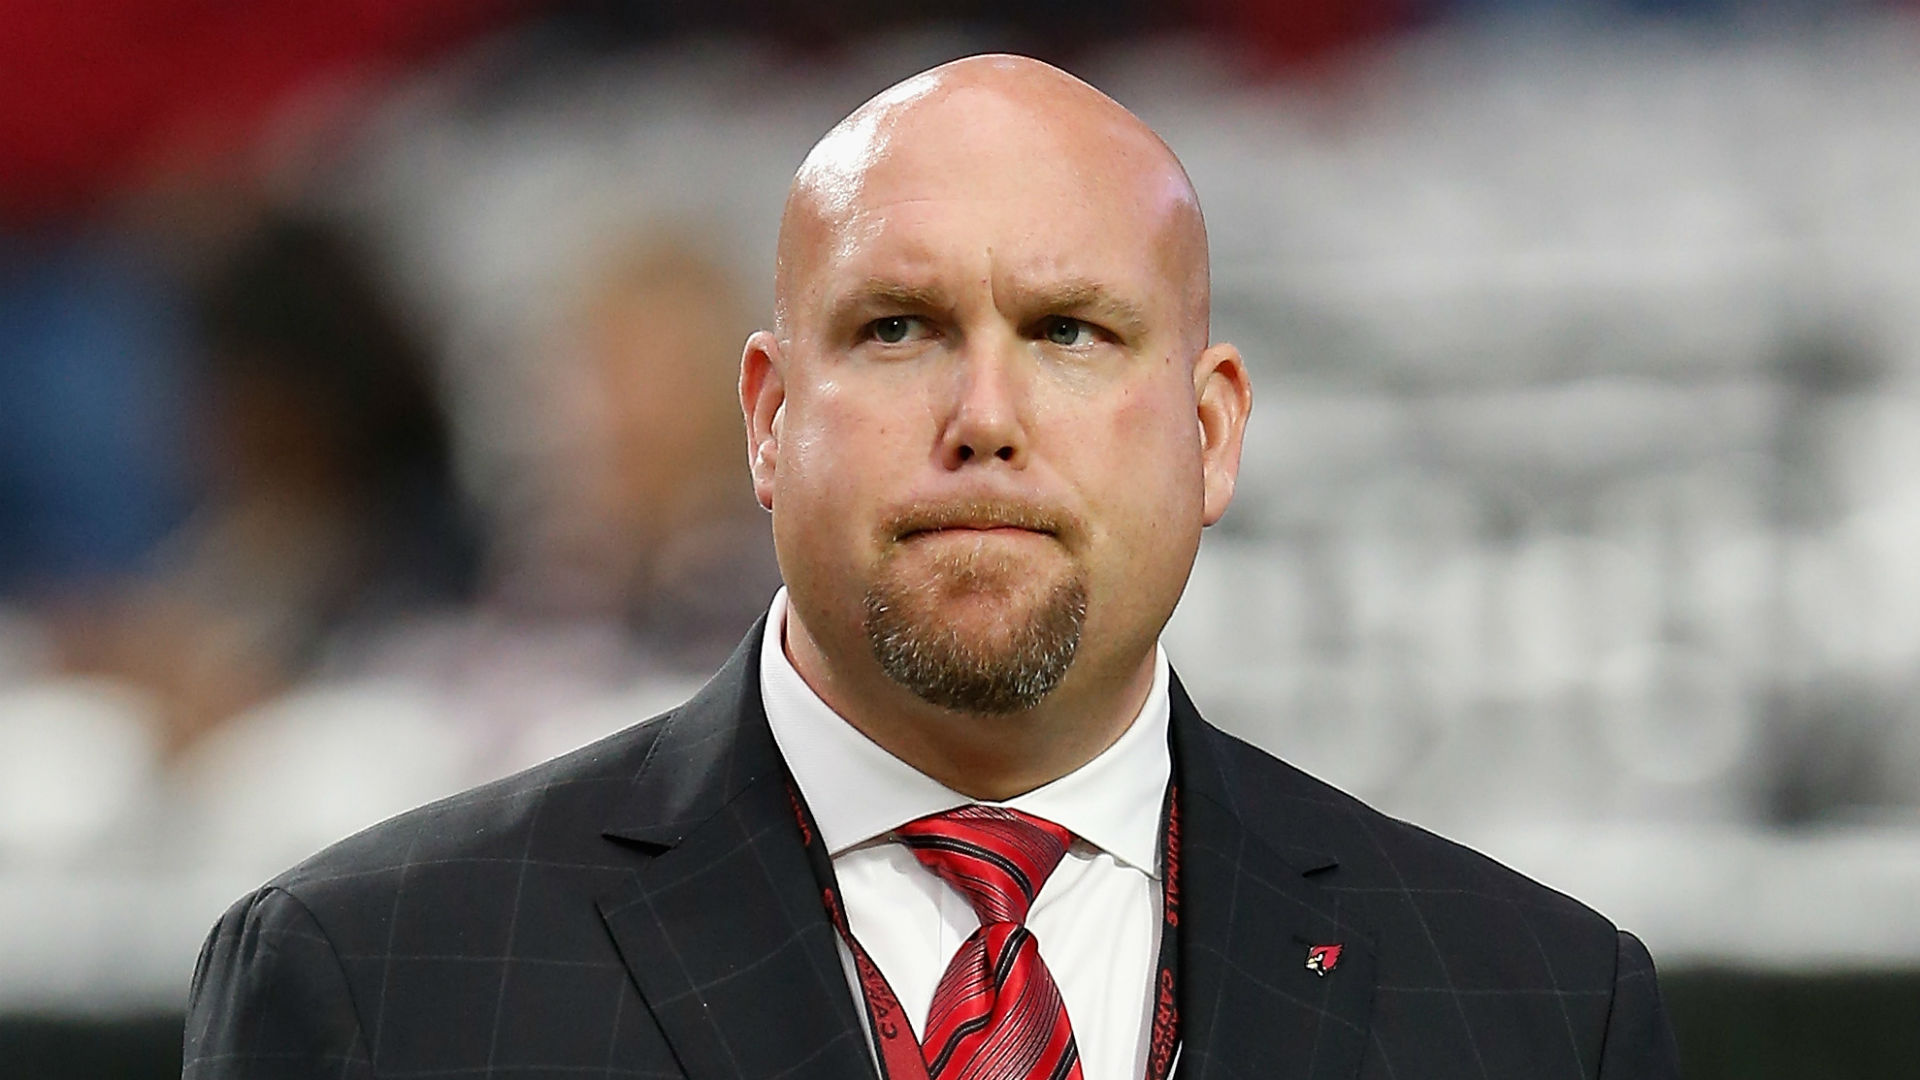 NFL's Cardinals sign GM Keim to contract extension